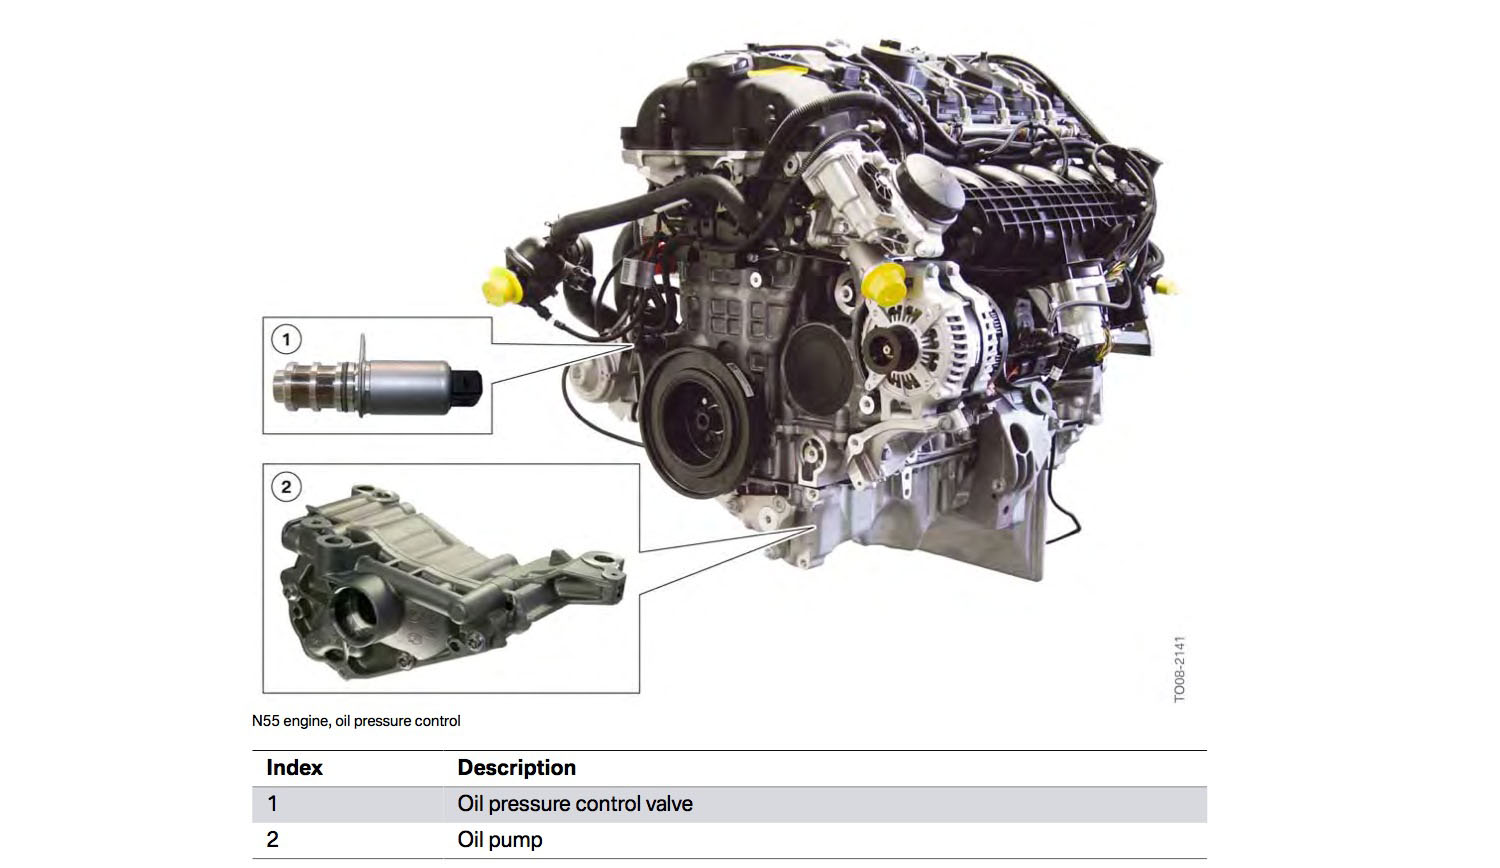 2014 bmw 328i engine diagram 2jz alternator wiring n55 forum news and blog bimmerpost